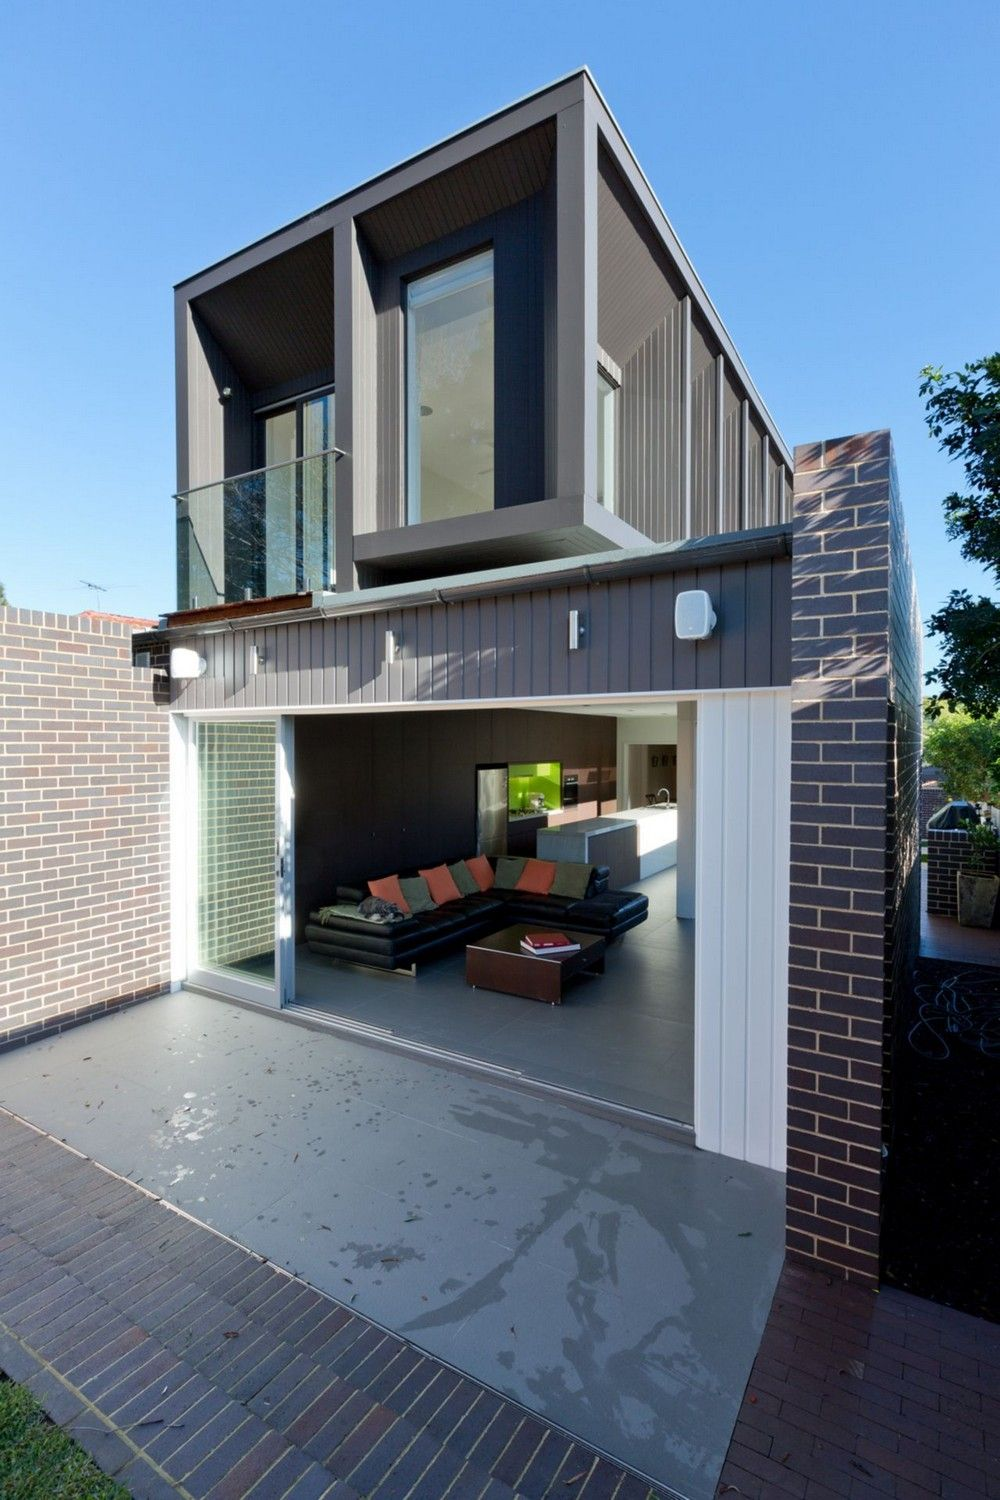 Exterior Architecture exterior g house architecture australian modern architecture with